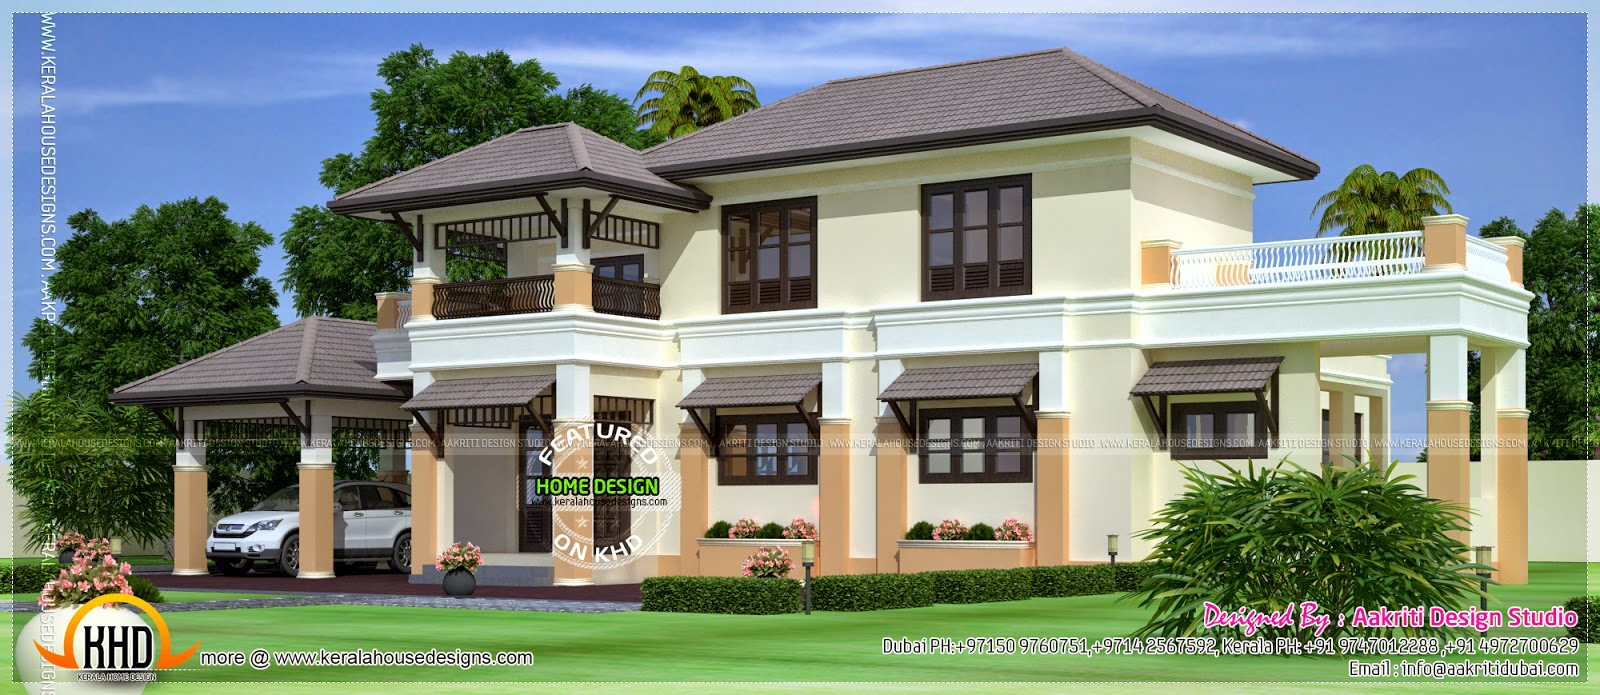 Get Free High Quality HD Wallpapers 400 Yard Home Design